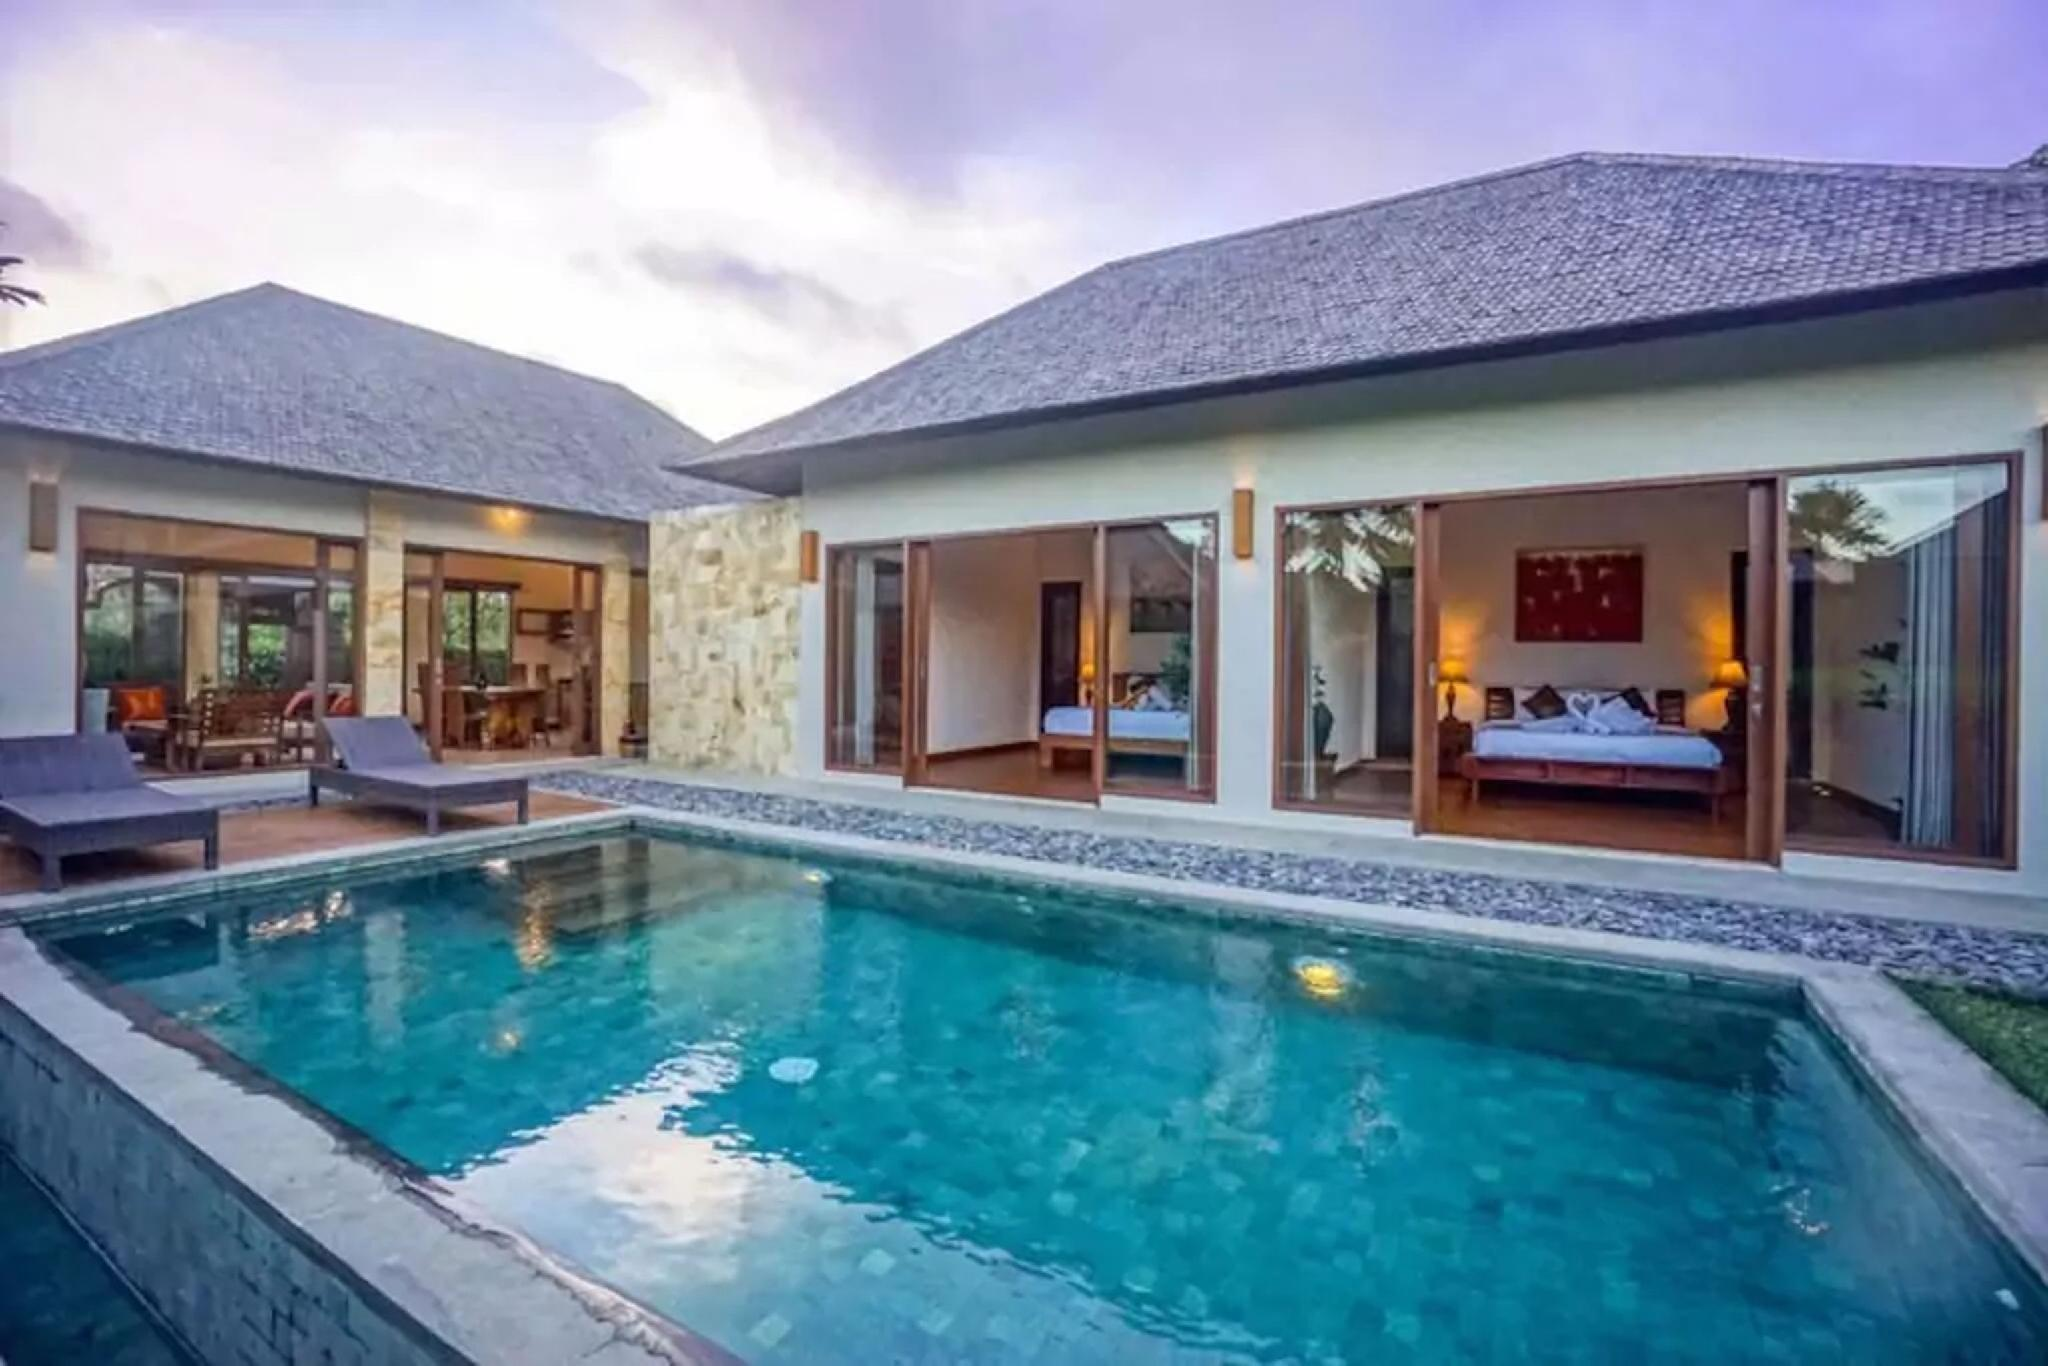 New  2BRVilla Cozy And Clean In Ubud  PROMO RATE